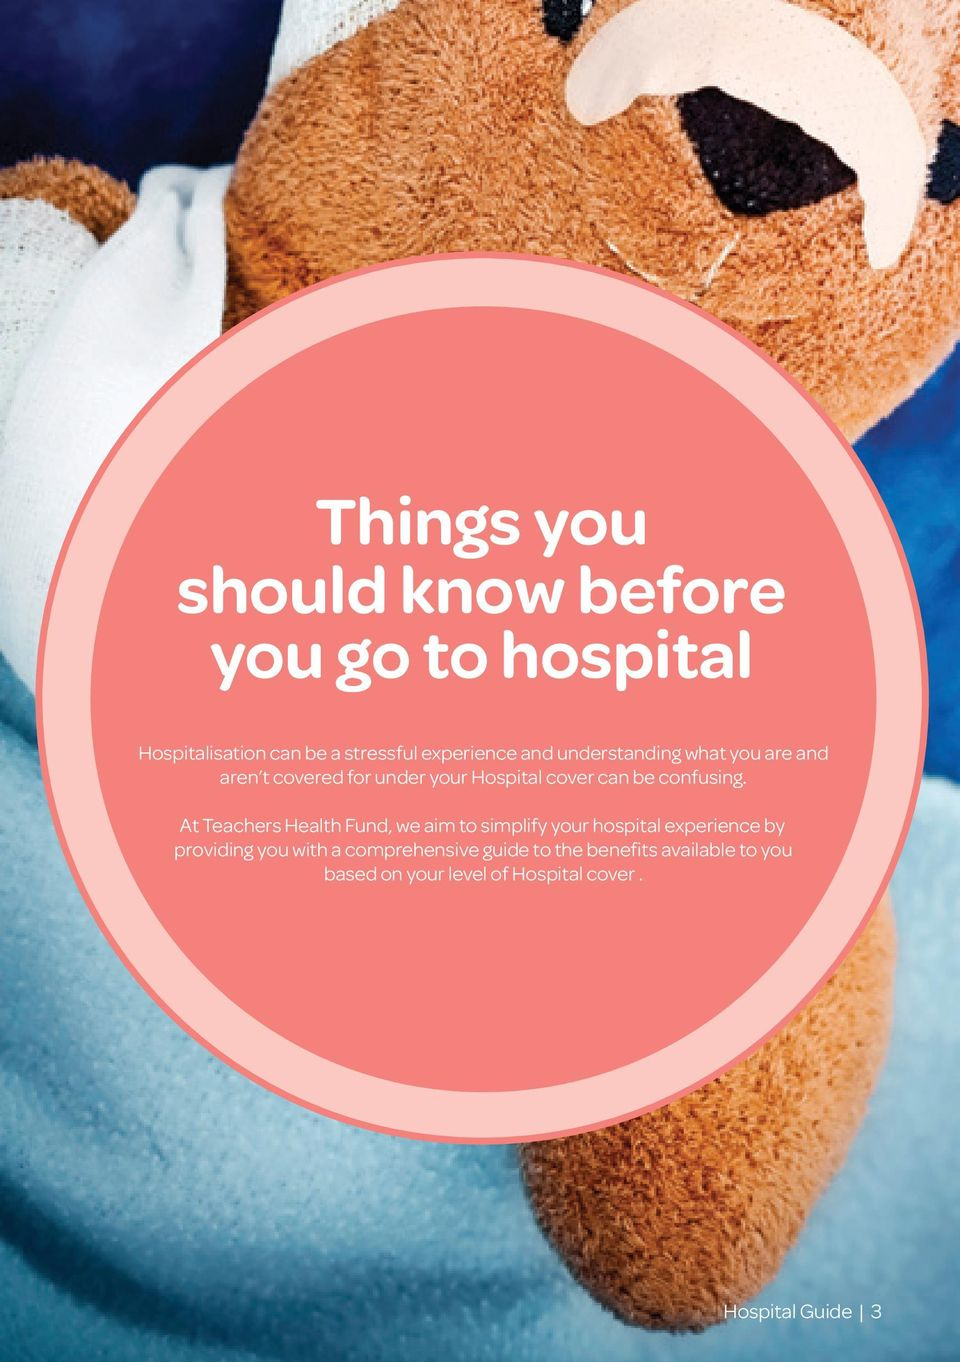 At Teachers Health Fund, we aim to simplify your hospital experience by providing you with a